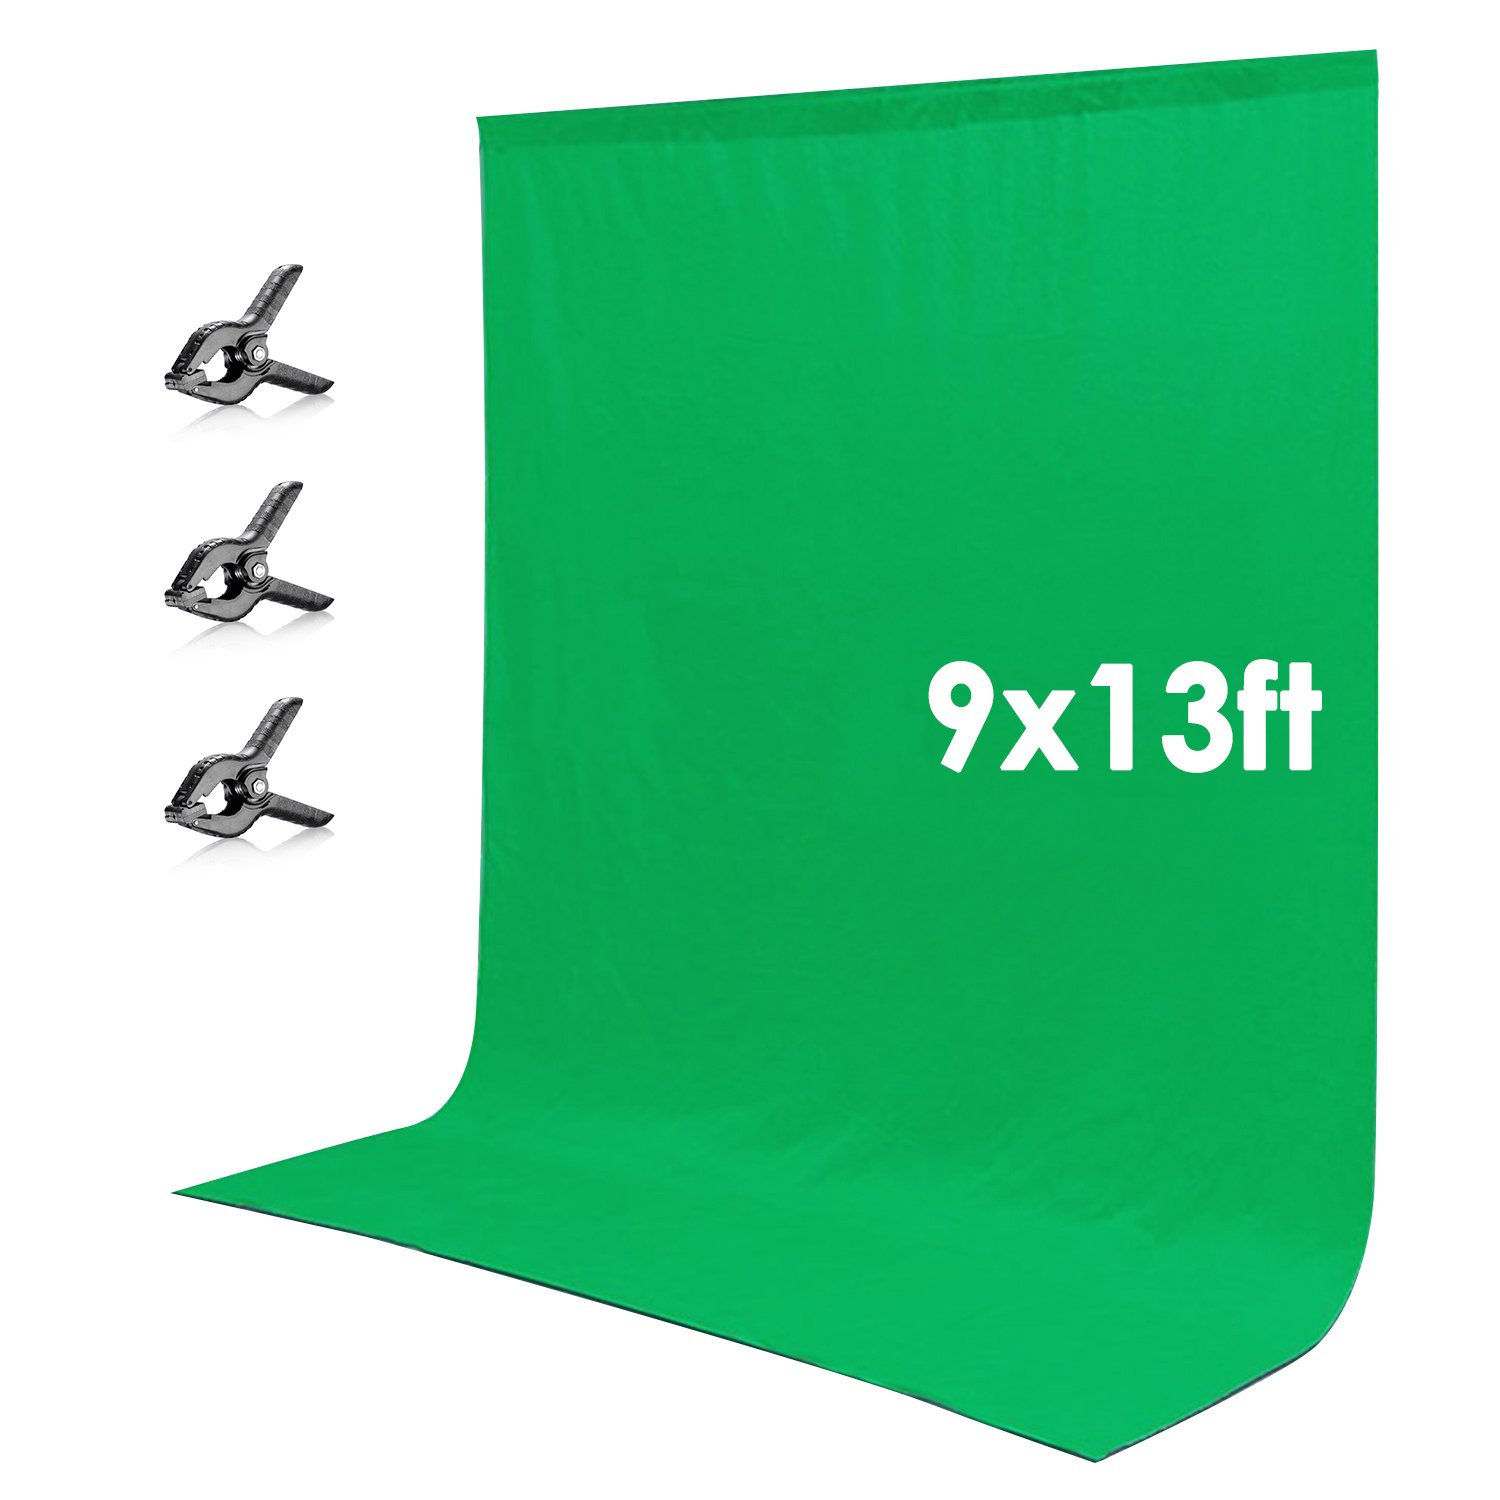 Neewer 9 x 13 feet/2.8 x 3.9 meters Muslin Photography Backdrop Background Screen with 3 Clamps for Photo Studio(Green) by Neewer